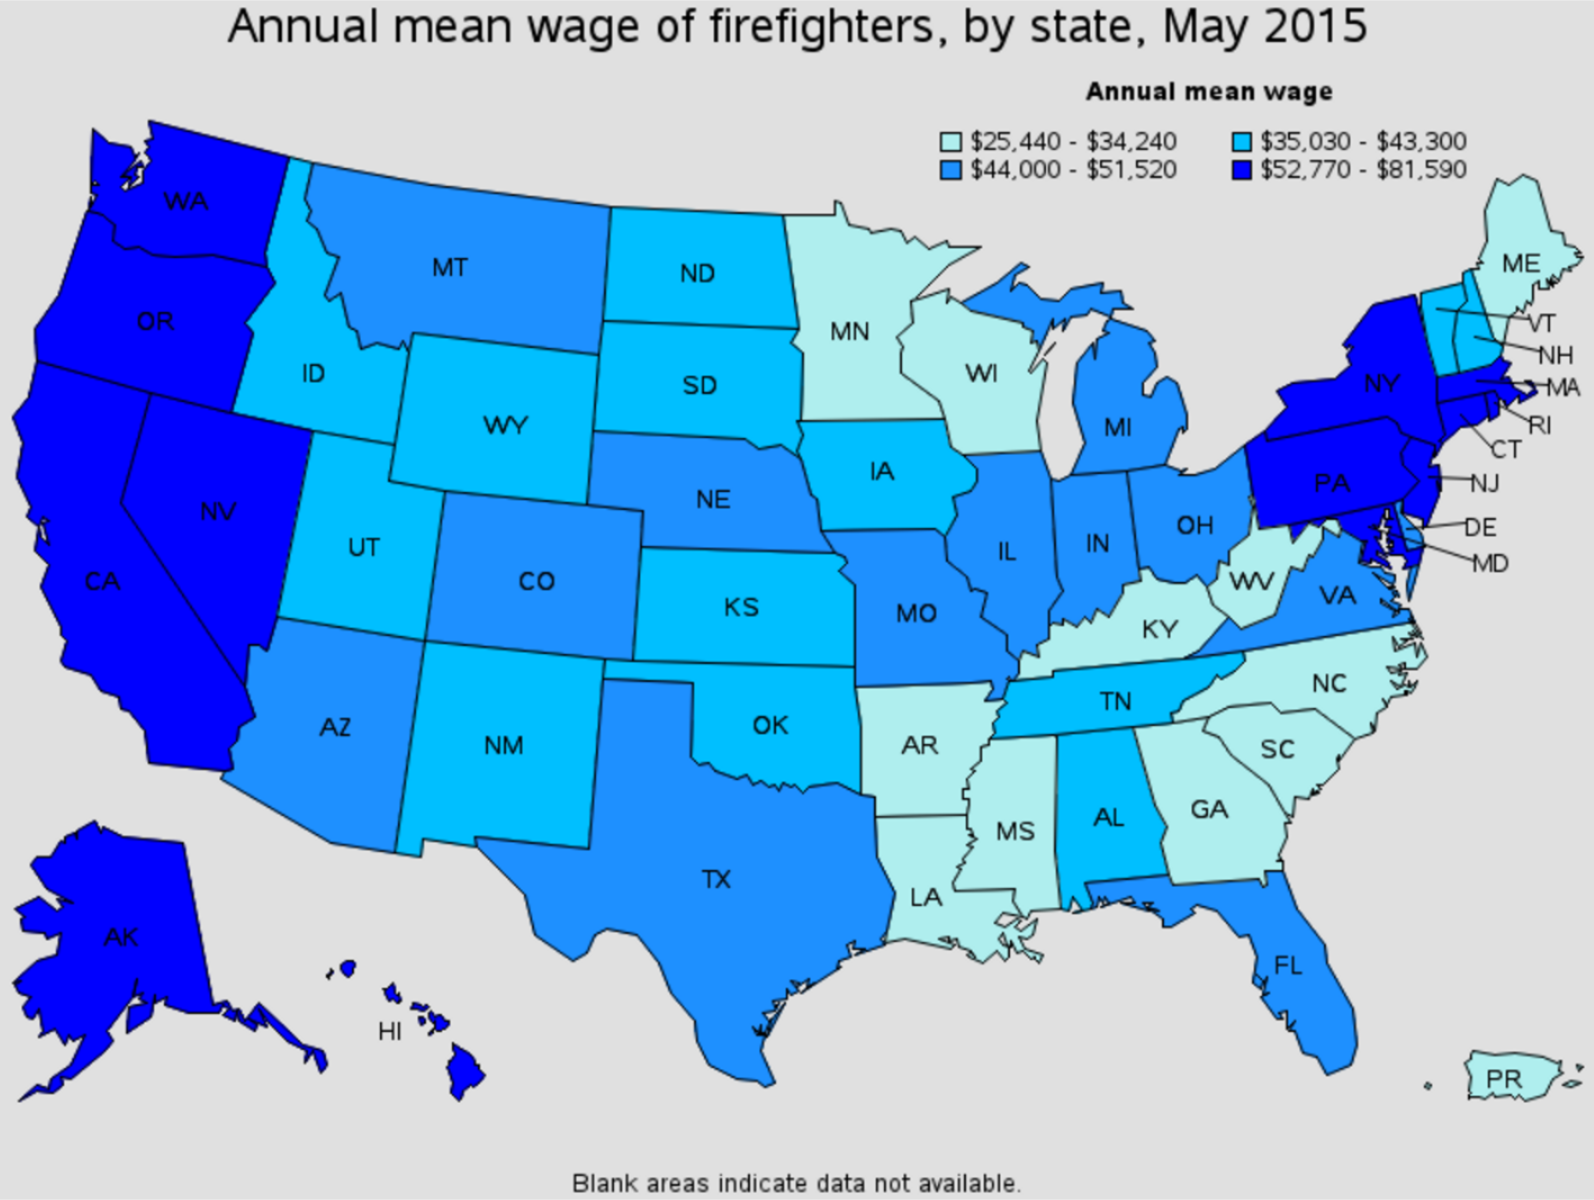 firefighter average salary by state Wrens Georgia